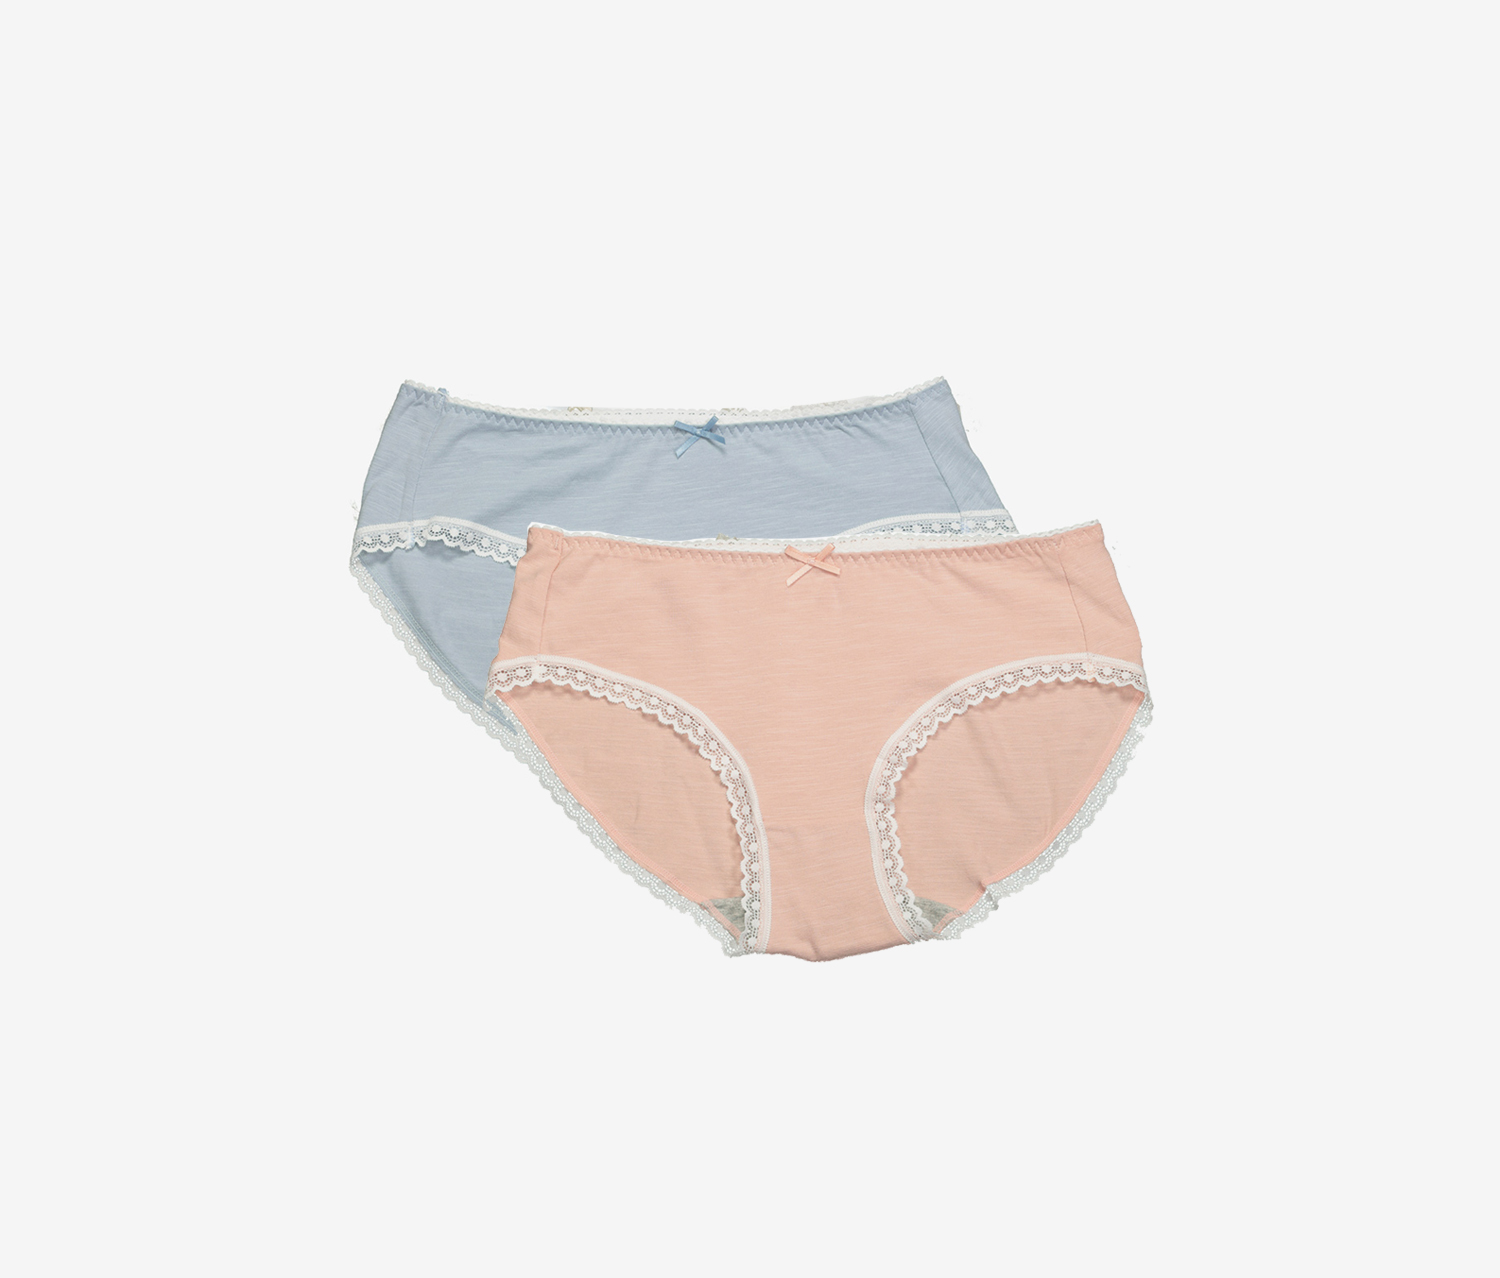 2 Pcs Women Underwear, Peach/Blue